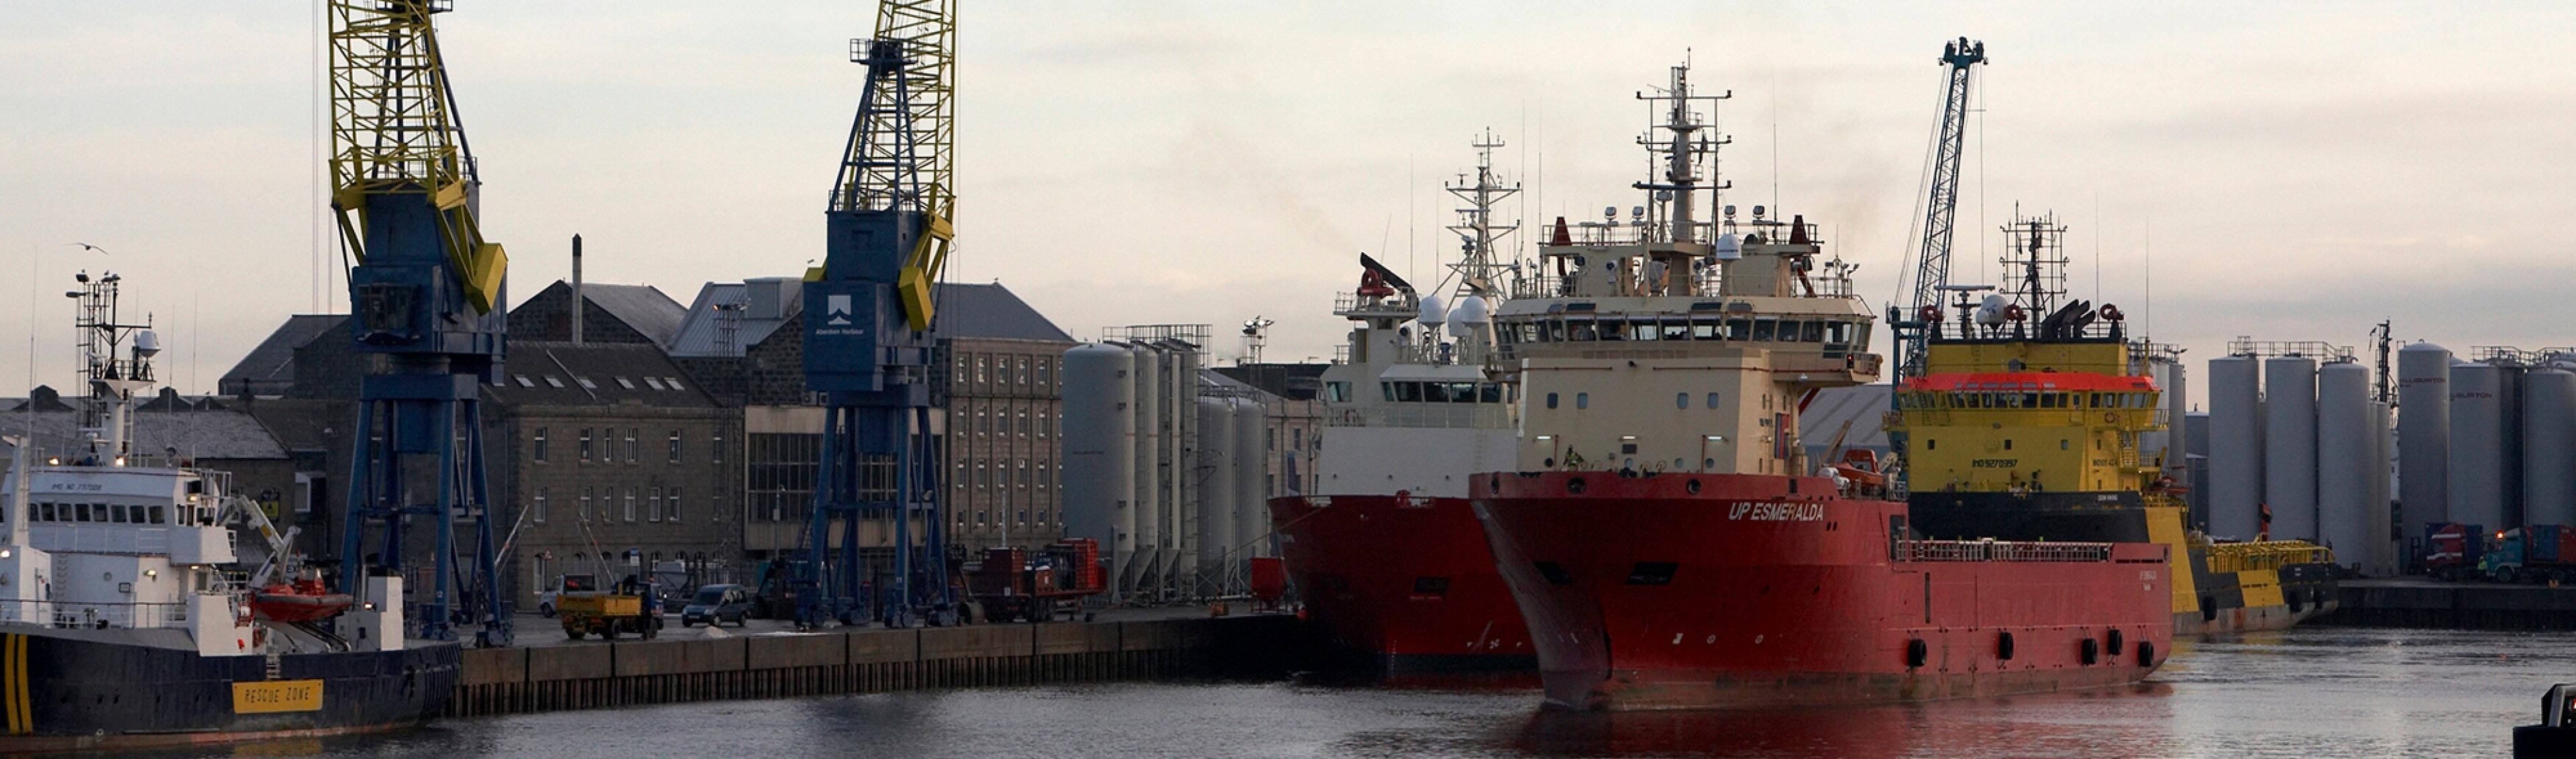 Aberdeen port with two supply vessels in the foreground, Aberdeen Scotland.